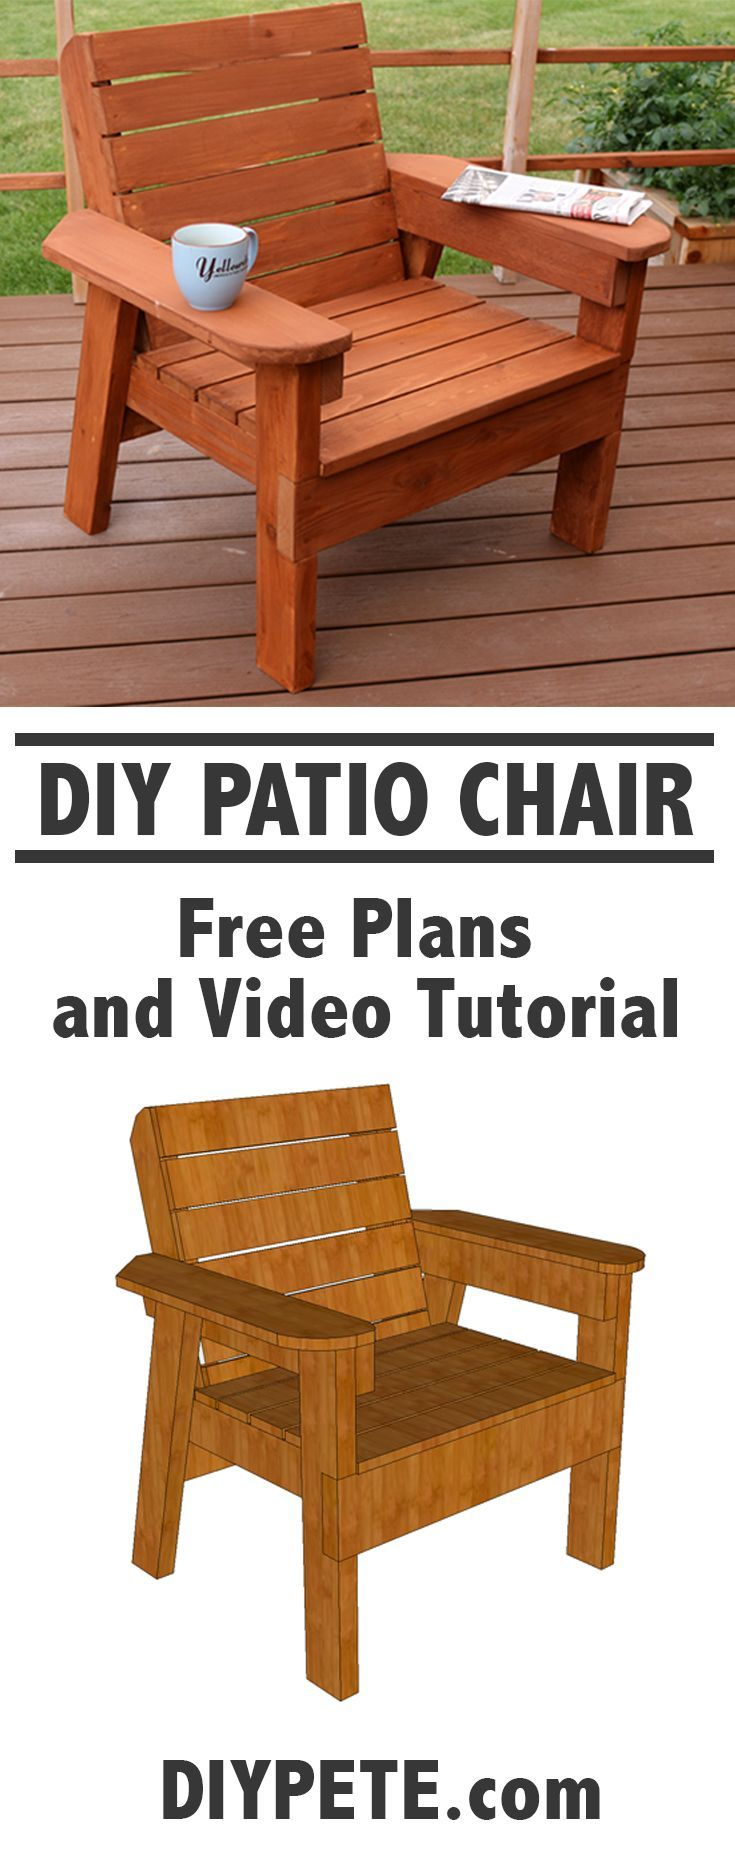 How to make a simple wooden chair - 17 Best Ideas About Diy Chair On Pinterest Tyre Chairs Tire Chairs And Bean Bag Pillow